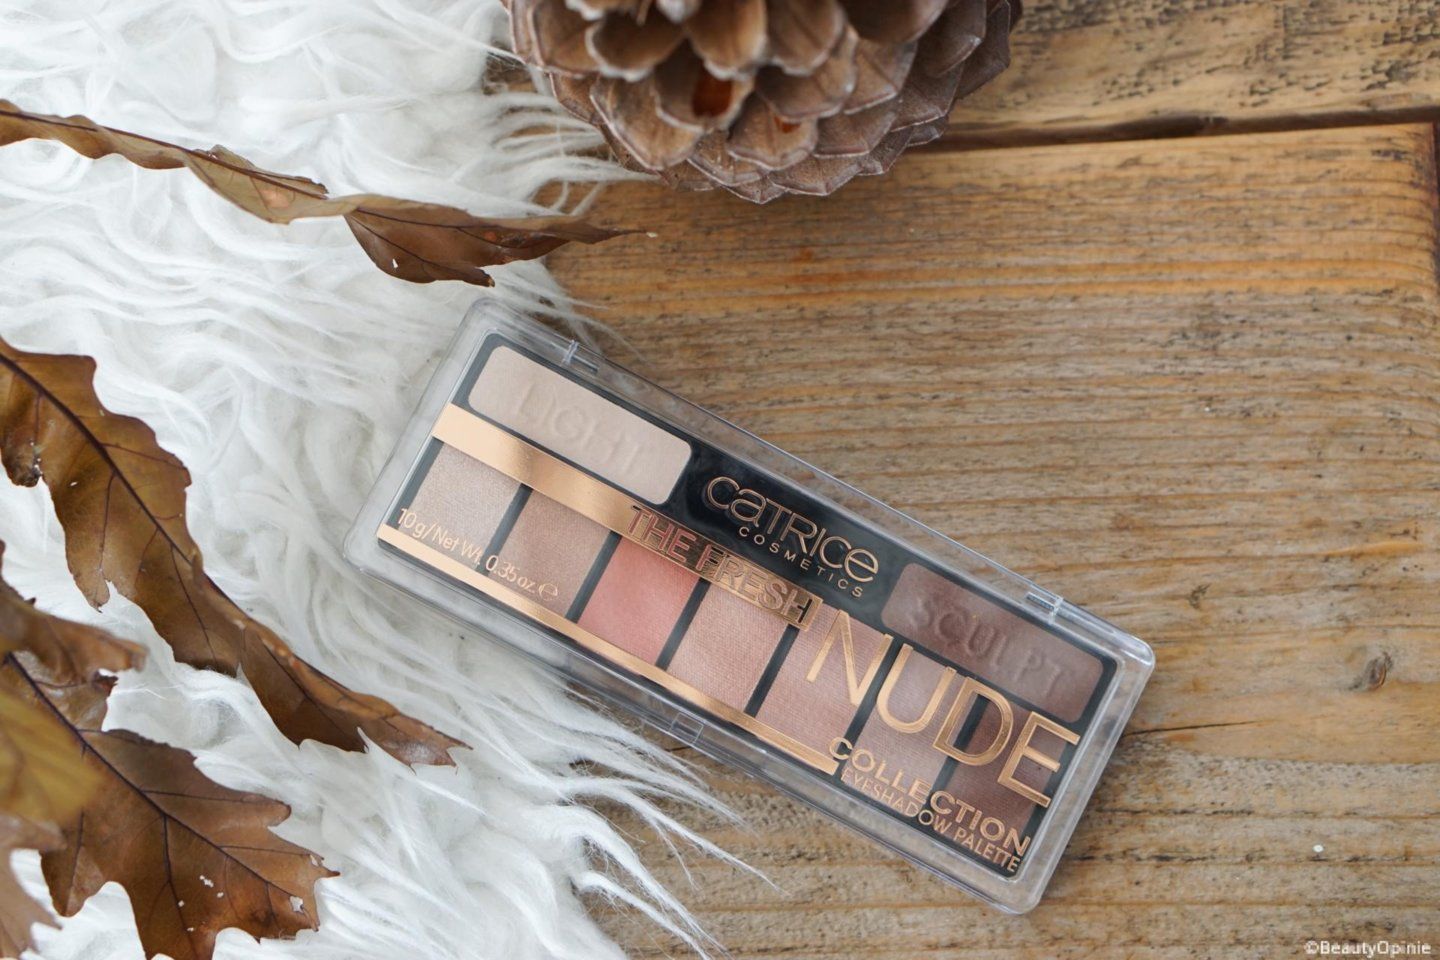 fresh nude collection oogschaduwpalette review